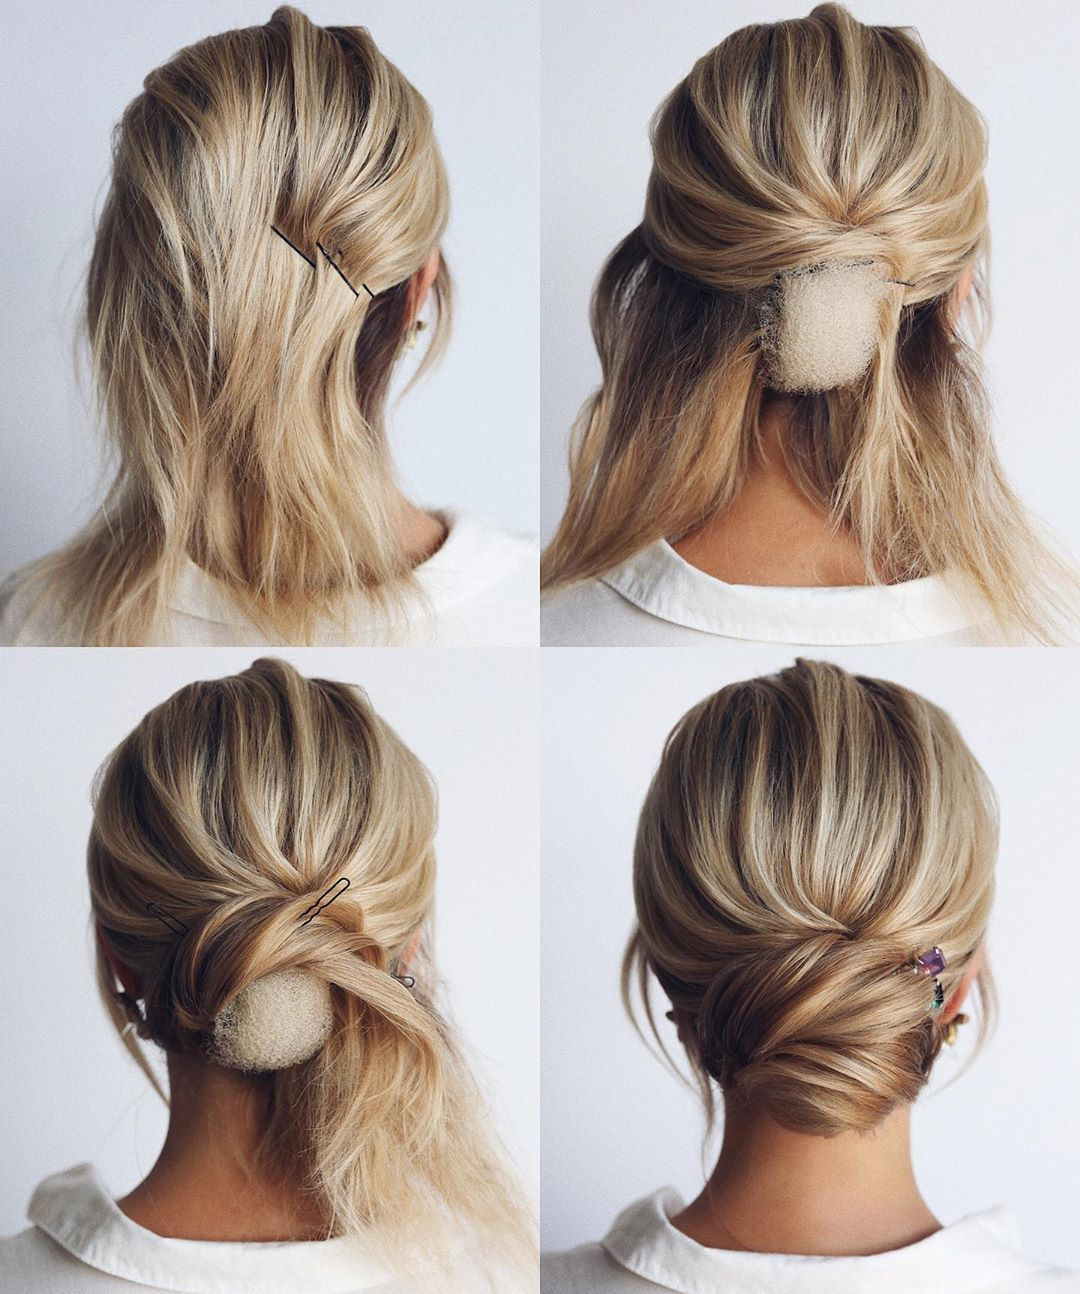 10 Easy And Cute Hair Tutorials For Any Occasion In 2020 With Images Short Wedding Hair Bridal Hair Updo Short Hair Updo